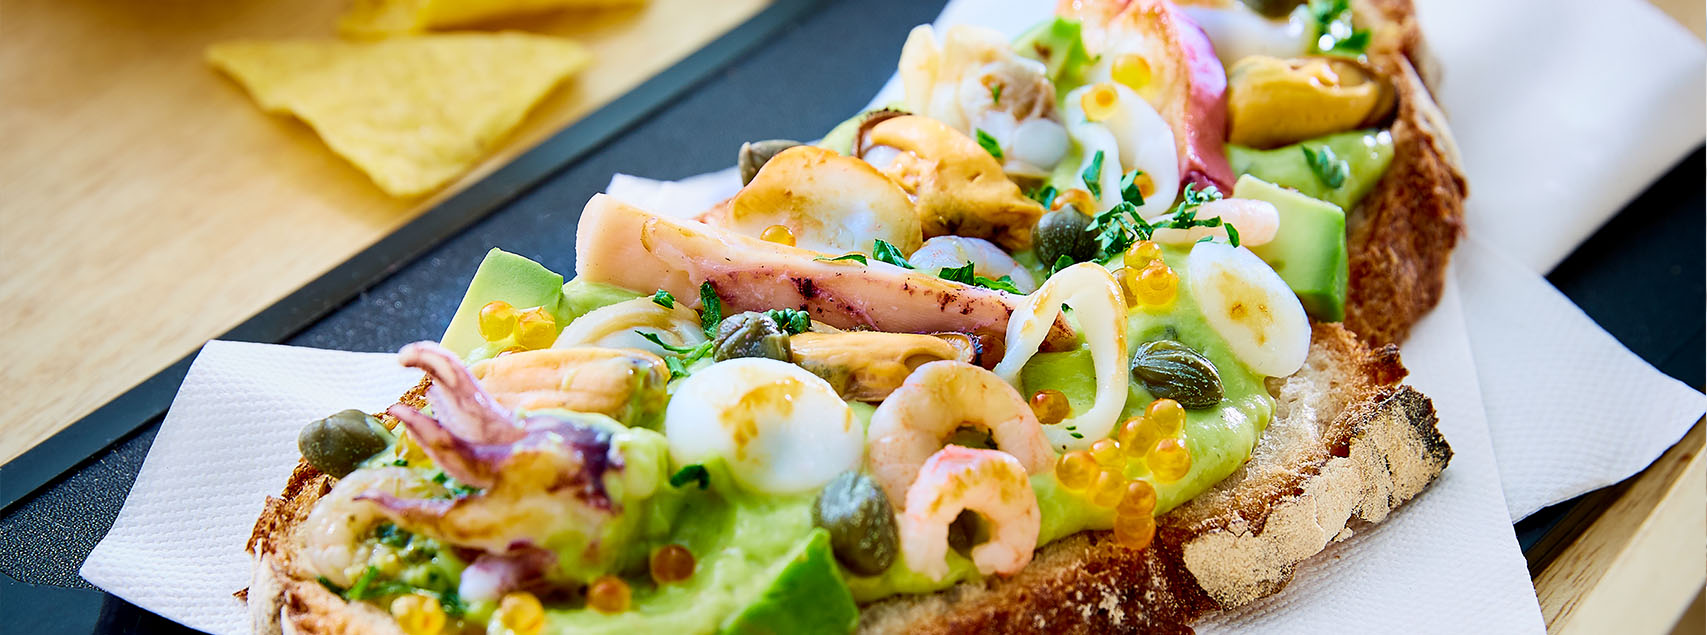 Seafood toasts with guacamole and salmon eggs